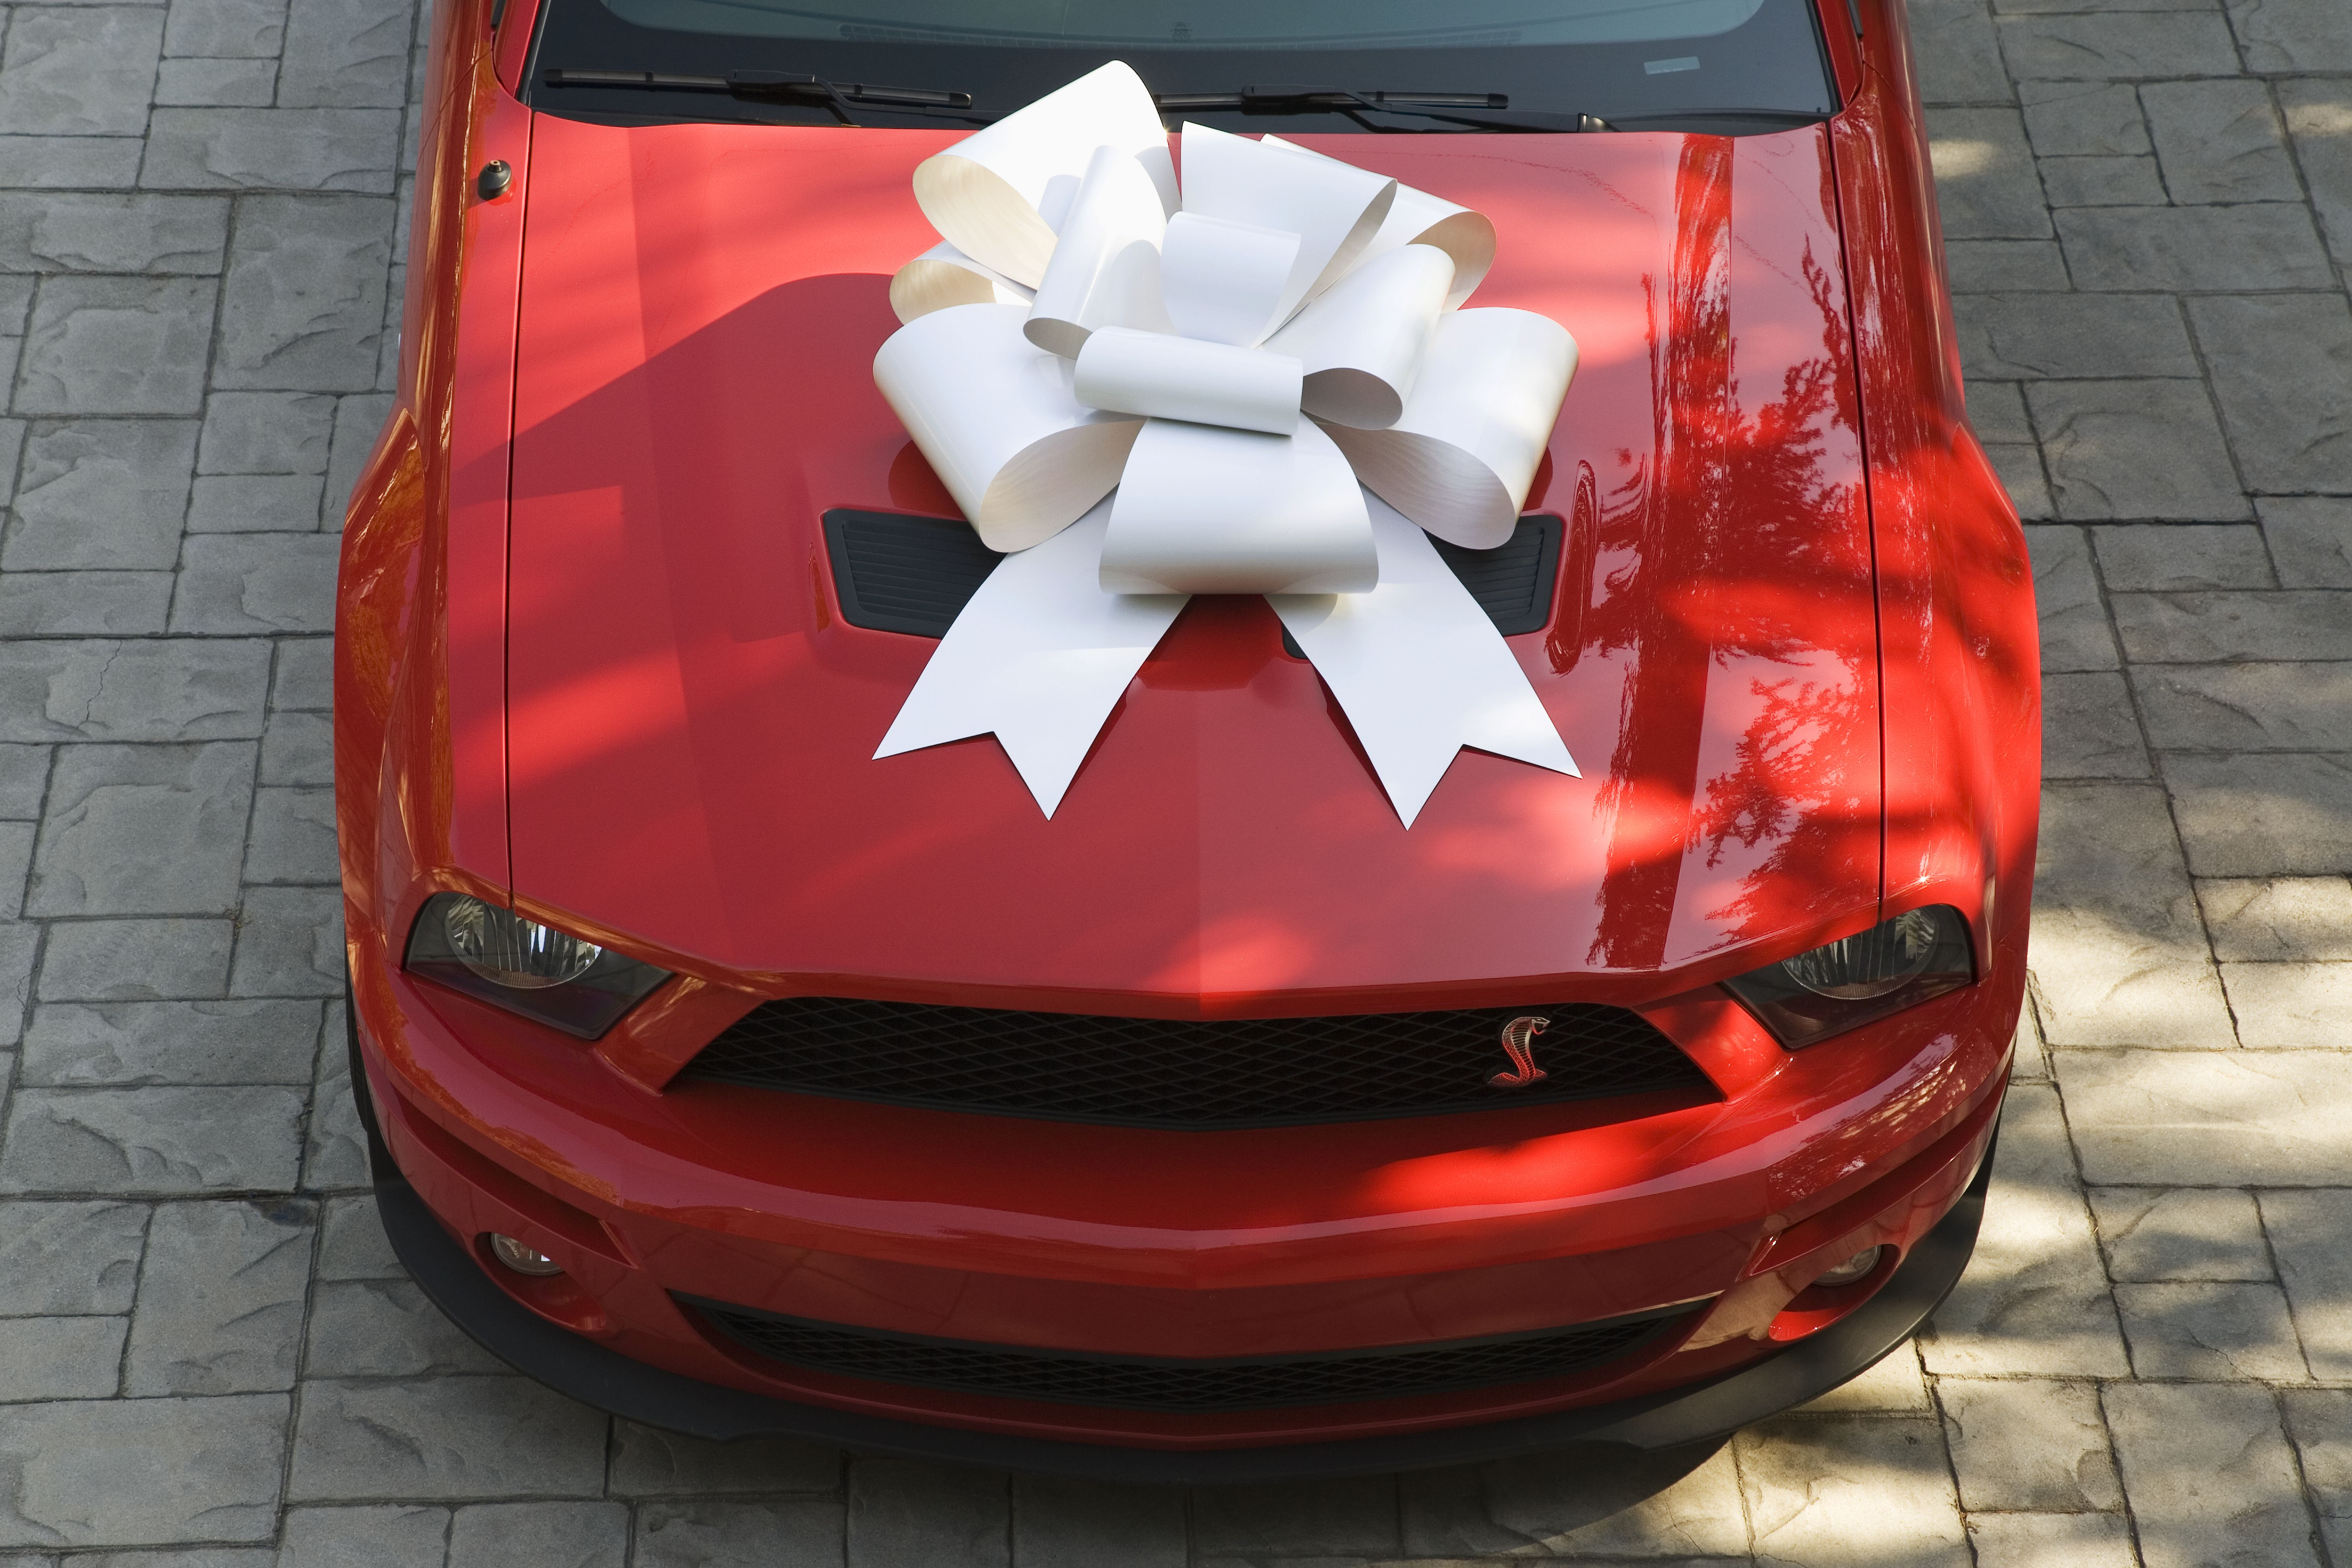 sweepstakes today new car sweepstakes free chances to win a new vehicle 3579